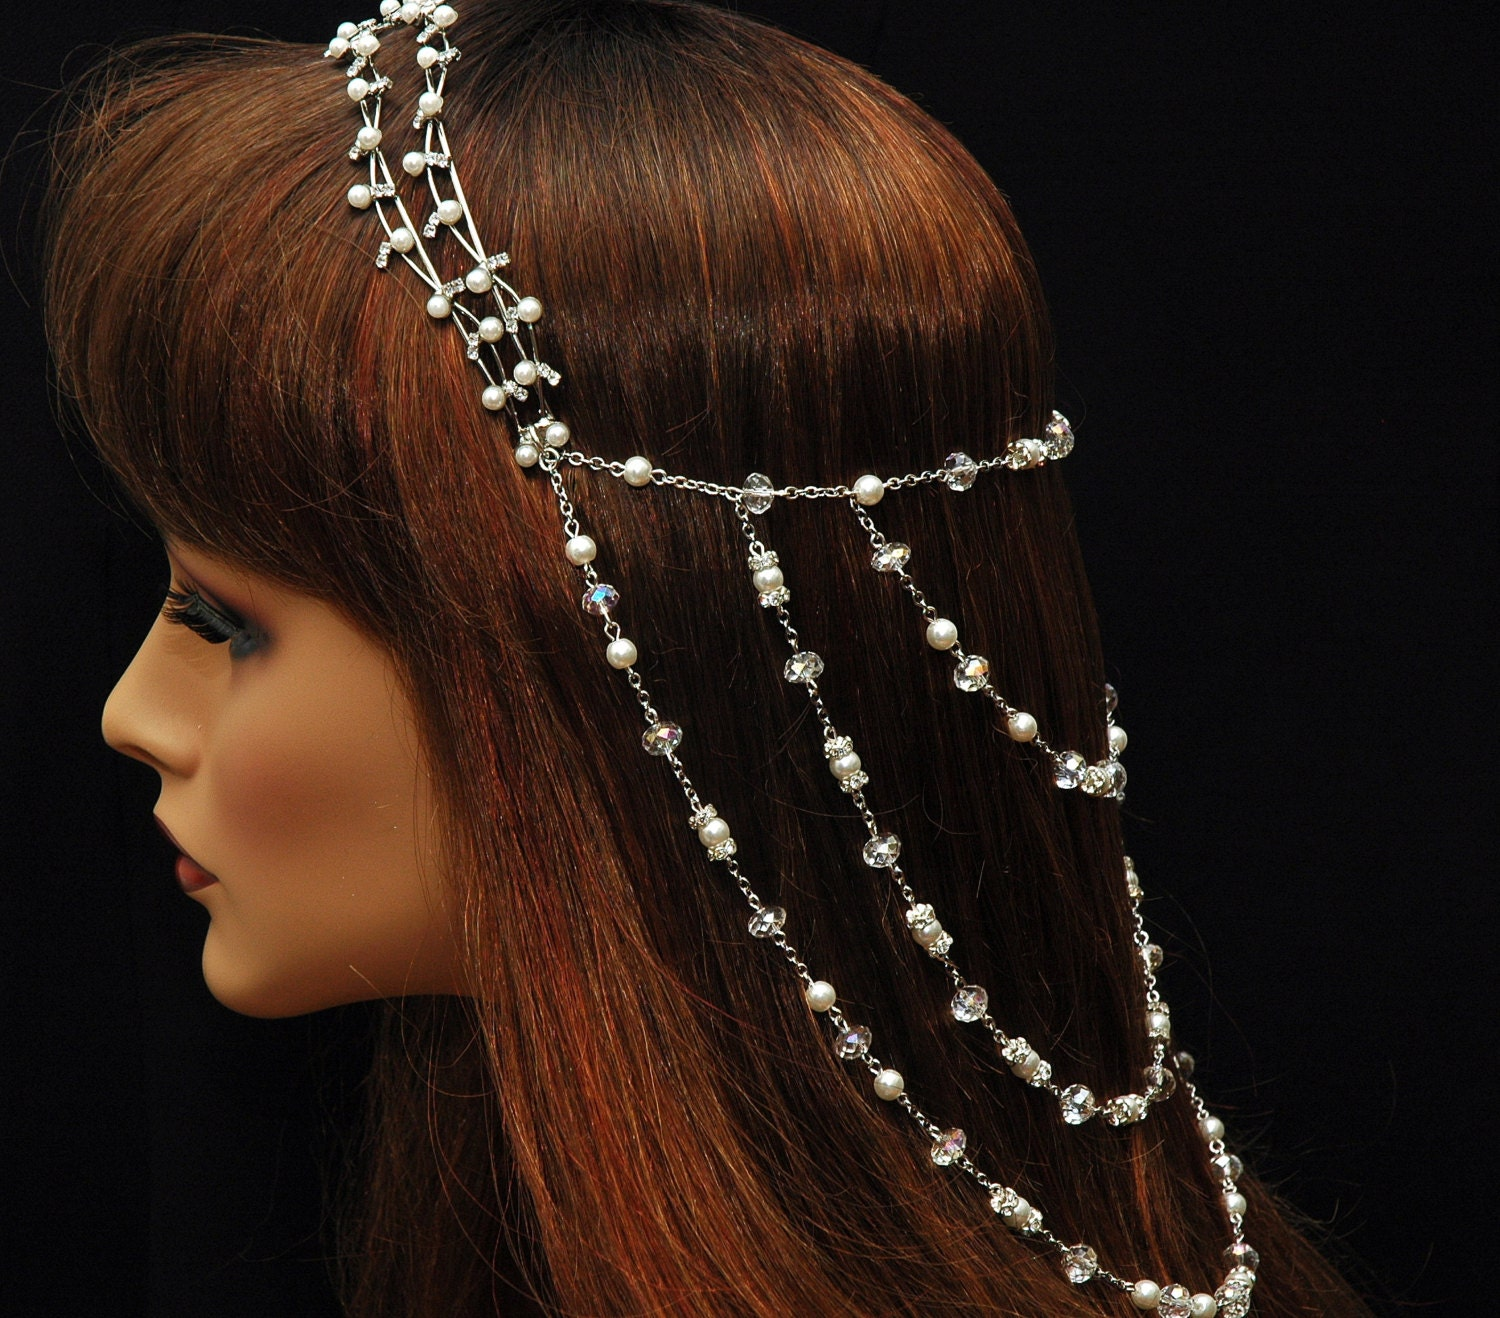 how to put hair jewelry on